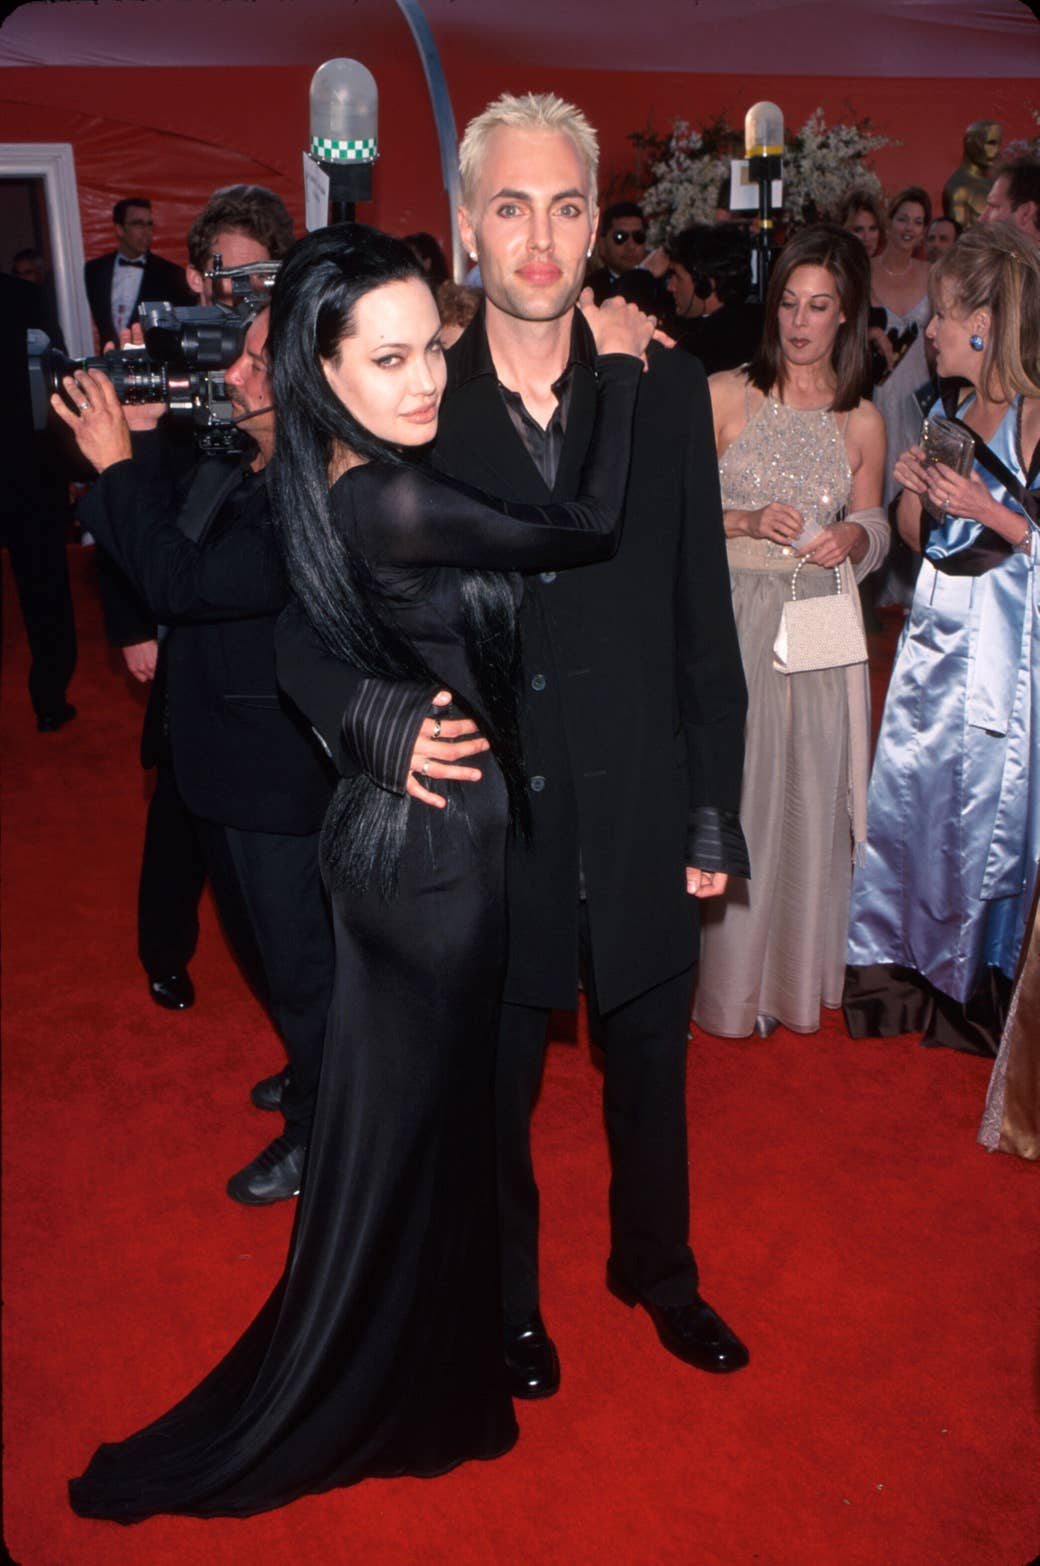 Angelina, wearing a black gown, hugging her brother